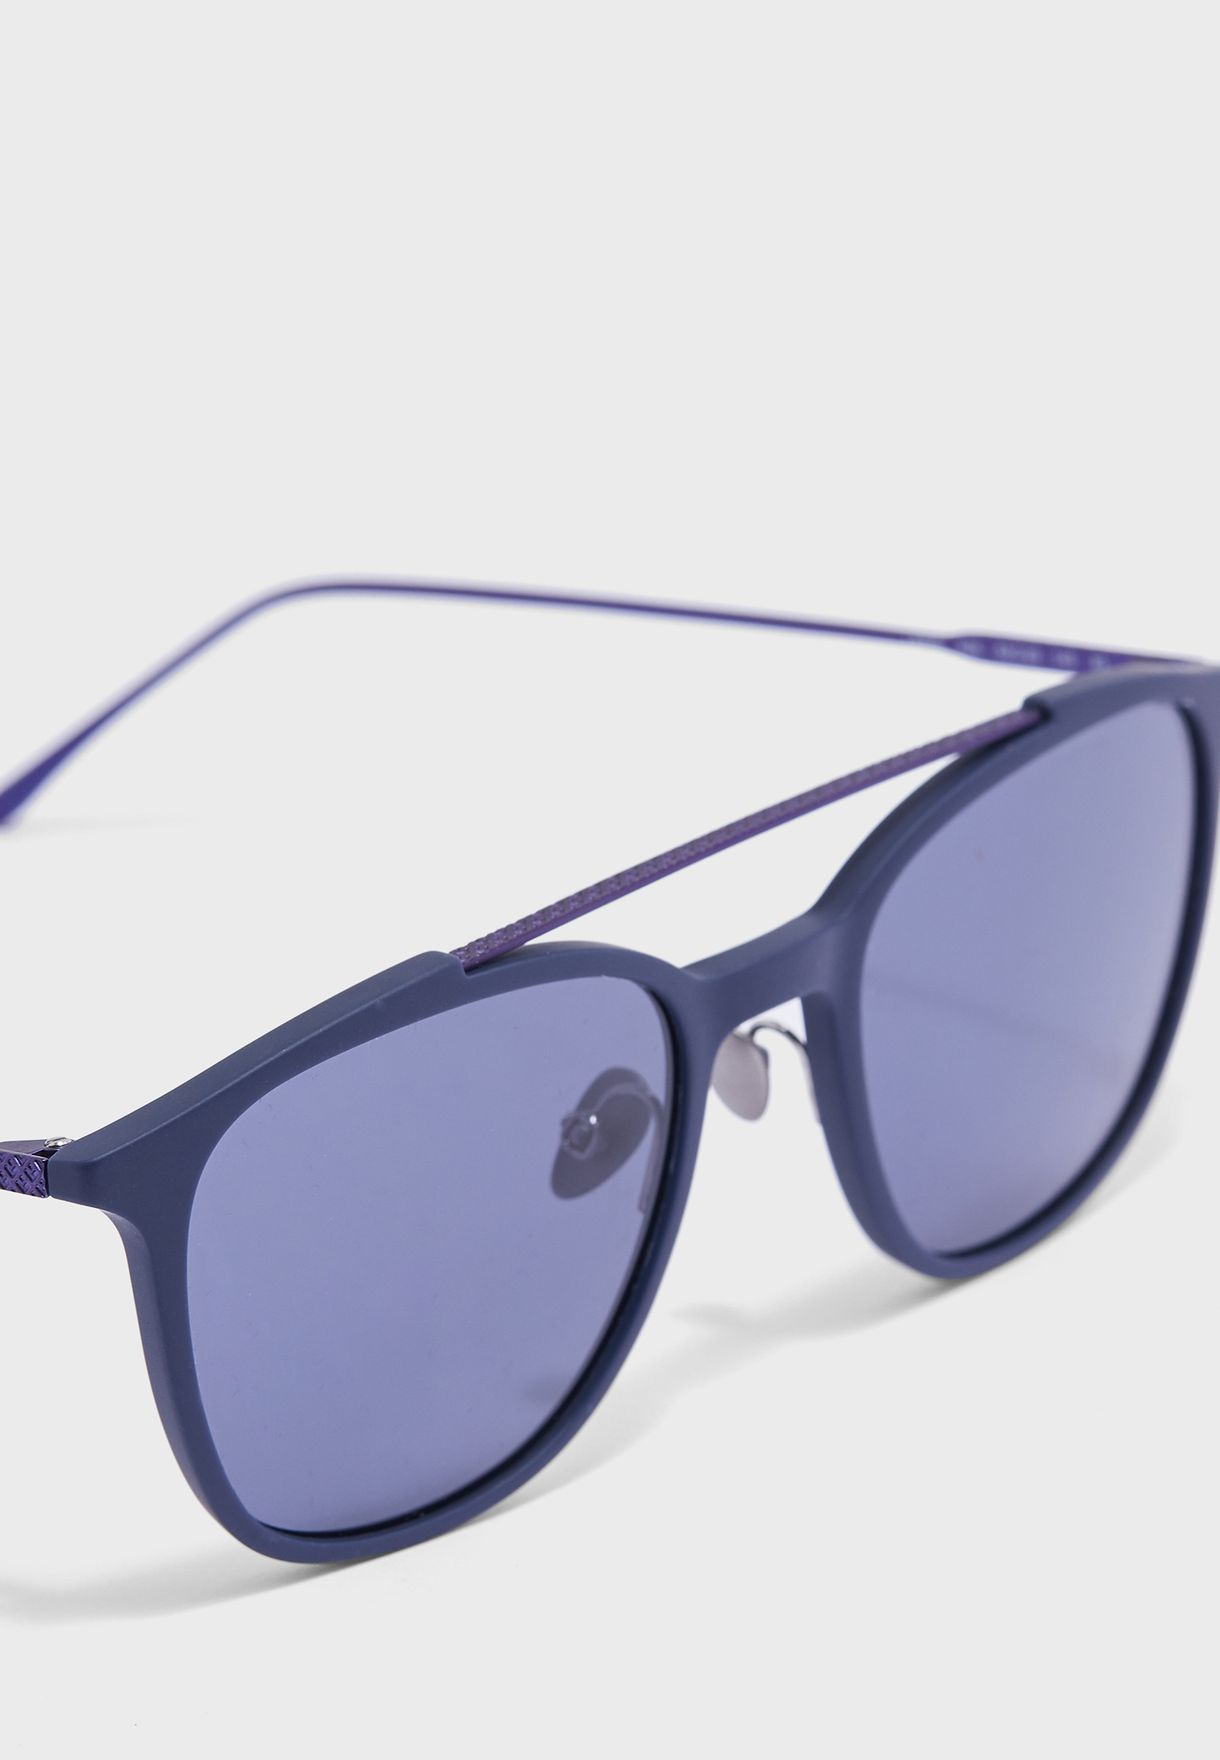 Ophthalmic Sunglasses